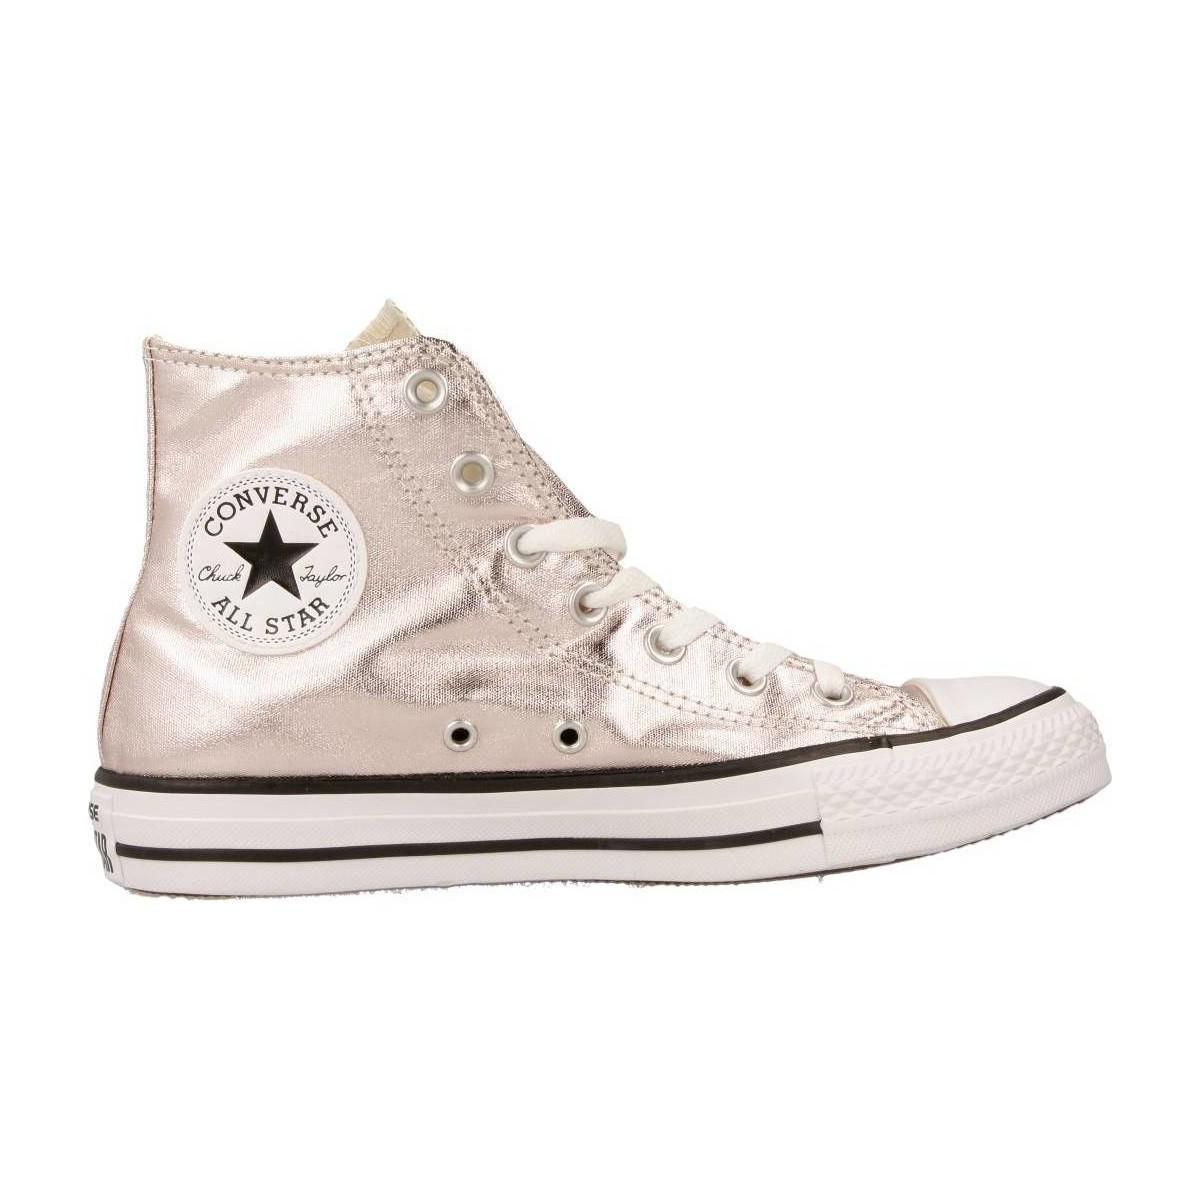 6b73f1f207c1 Converse Ctas Hi Rose Quartz white b Women s Shoes (high-top ...